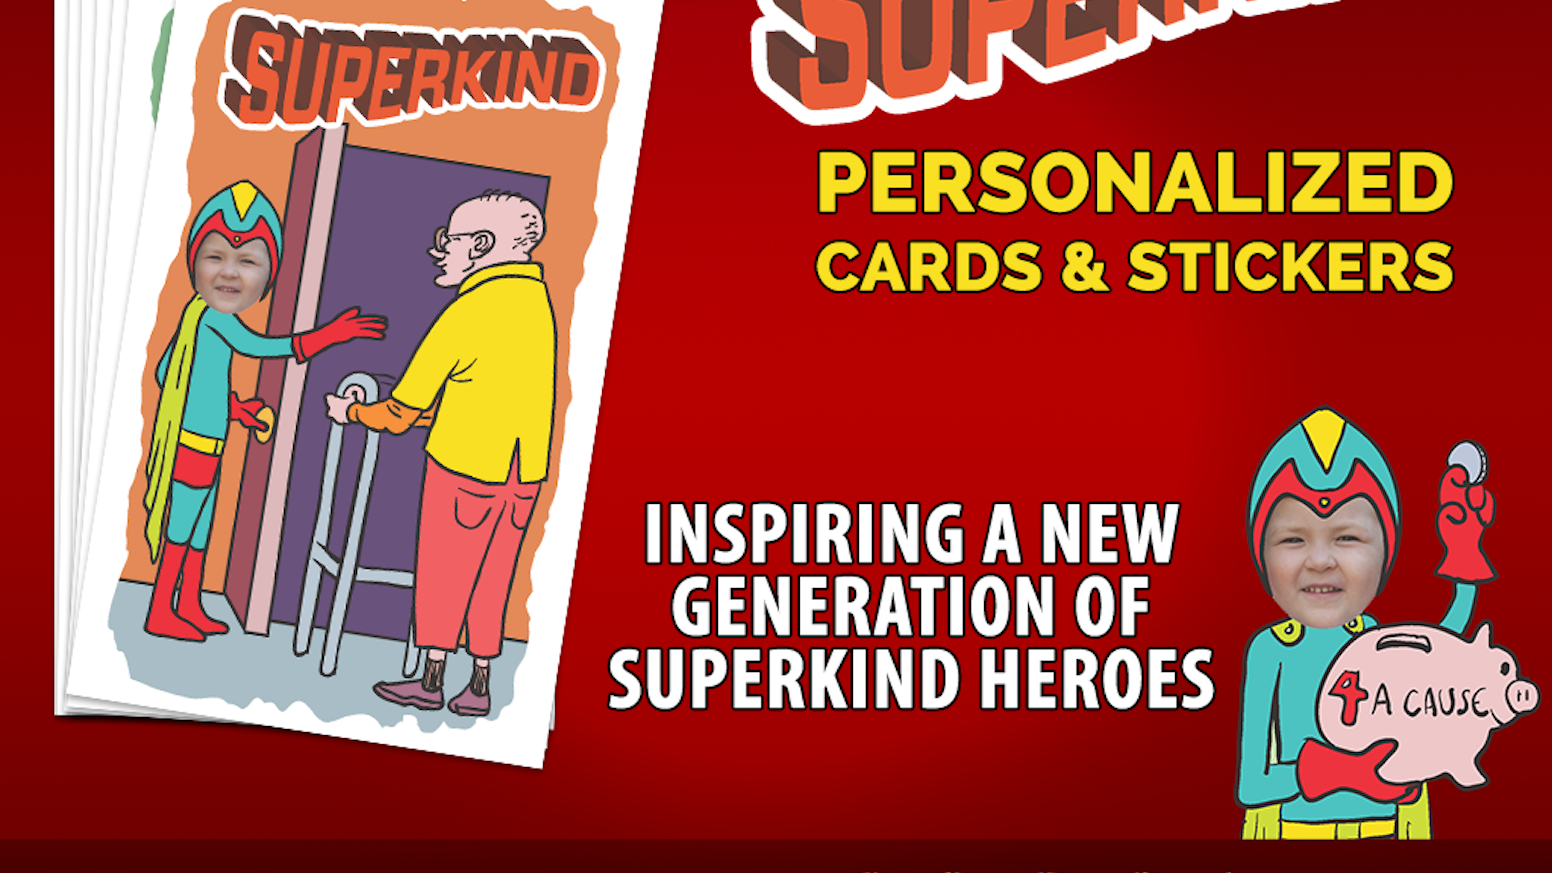 Personalized kindness cards & stickers with your child featured as SuperKind, an everyday hero saving the world with acts of kindness.